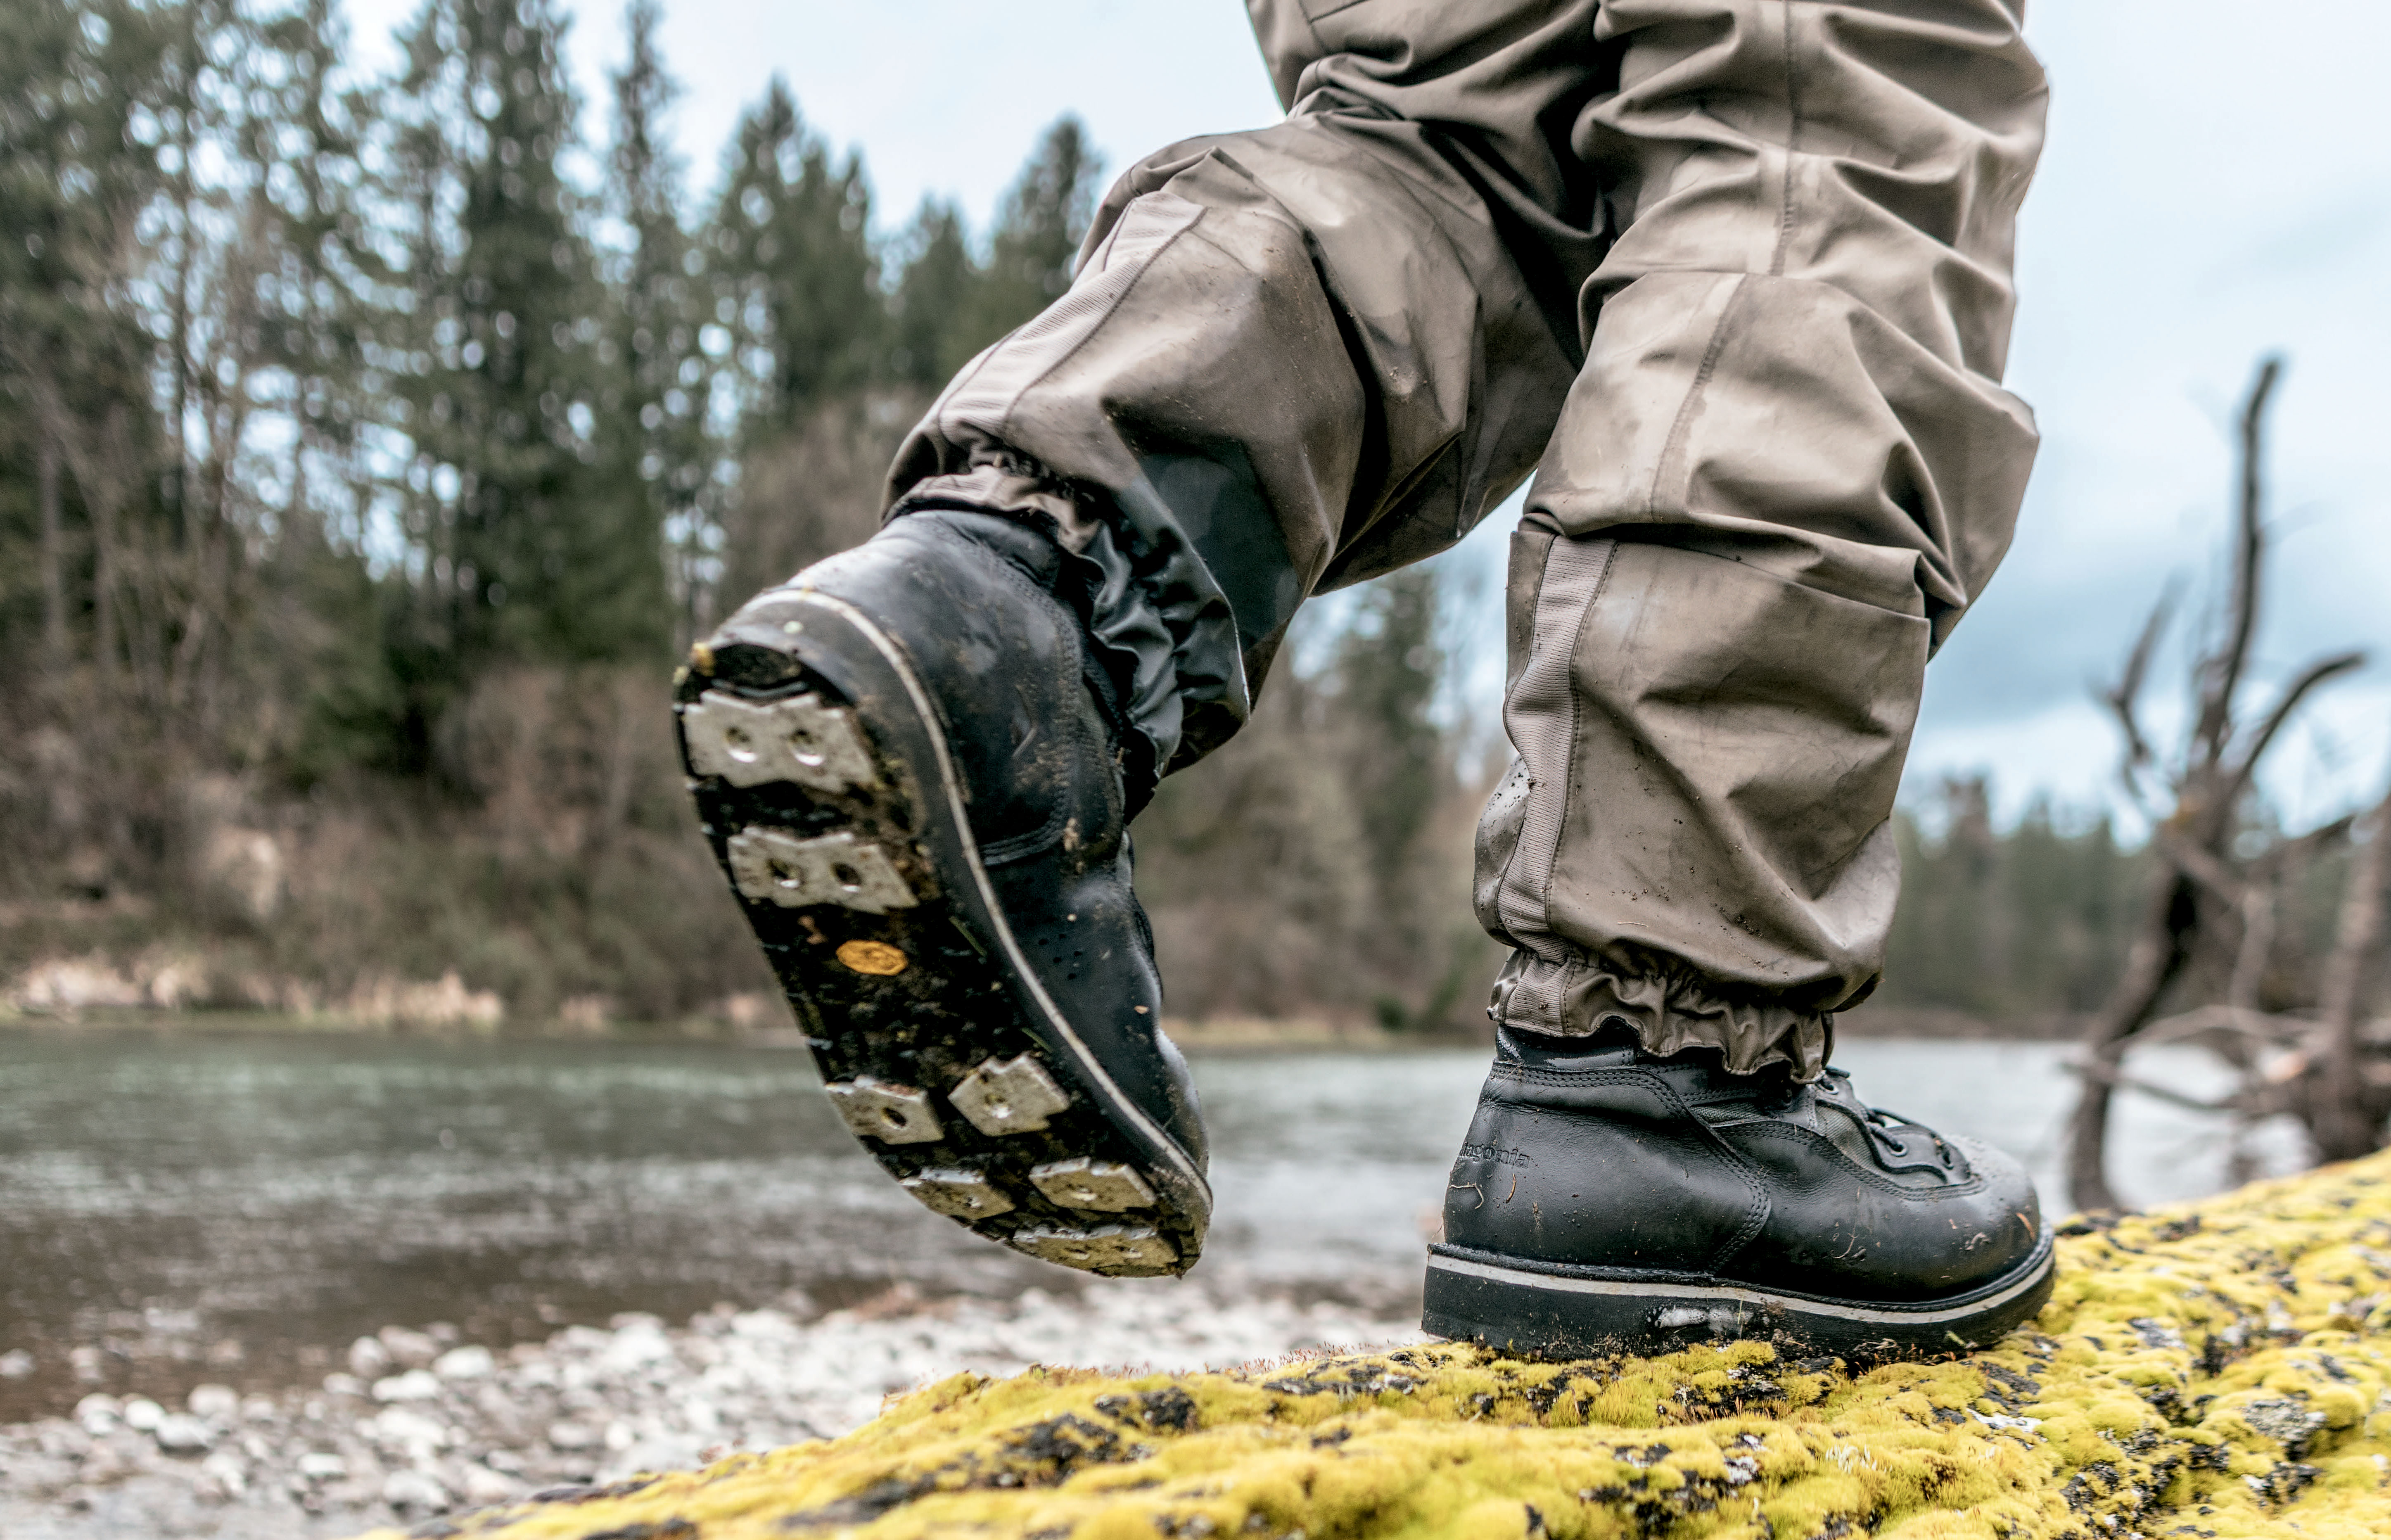 60b54c3b8af Patagonia, Danner Team Up for 'Foot Tractor' Wading Boots | GearJunkie